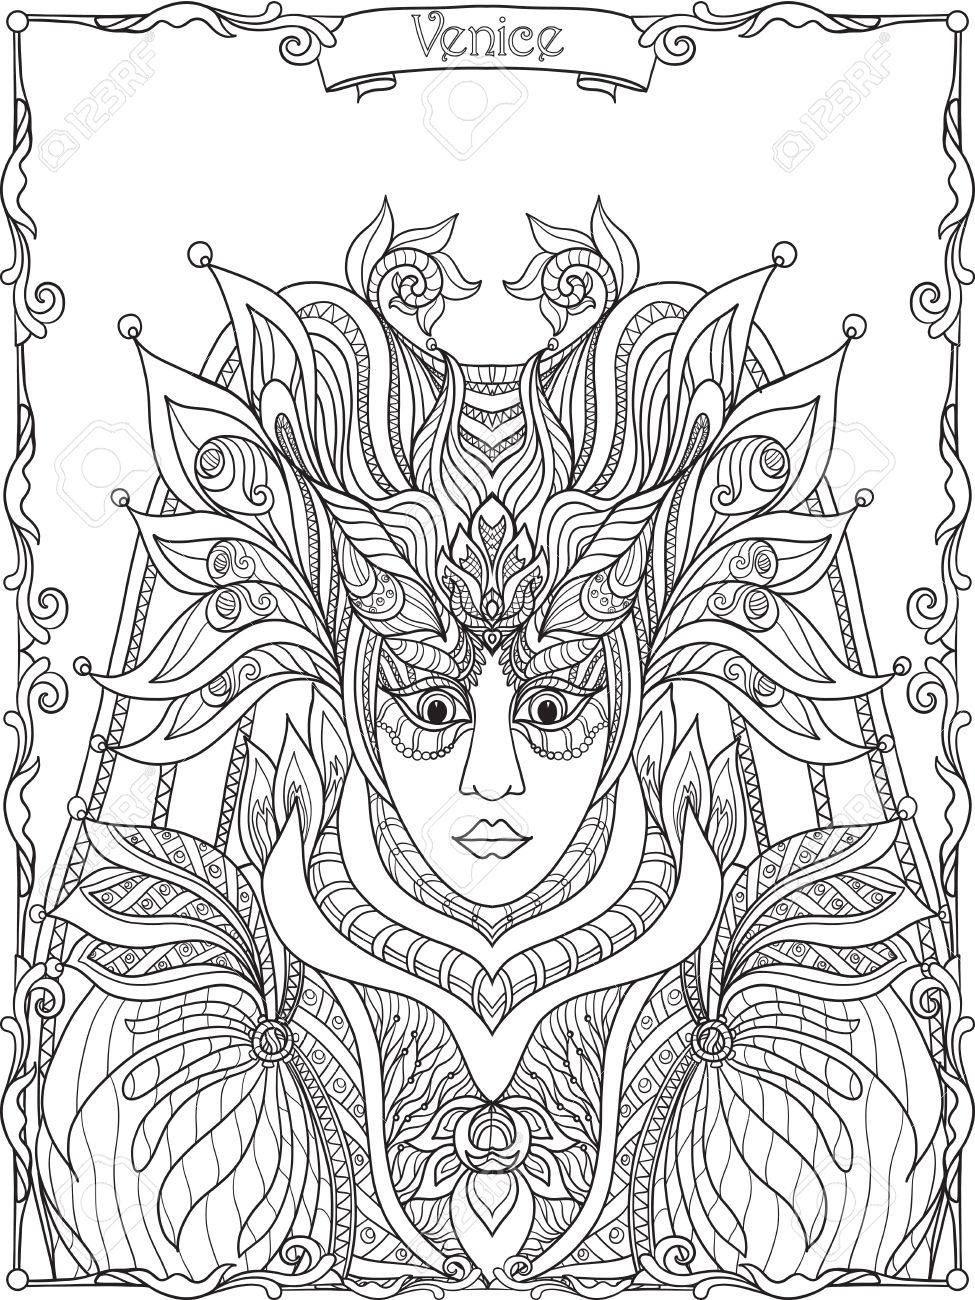 venetian mask carnival costume outline hand draw coloring book for adult and older children - Draw Coloring Book